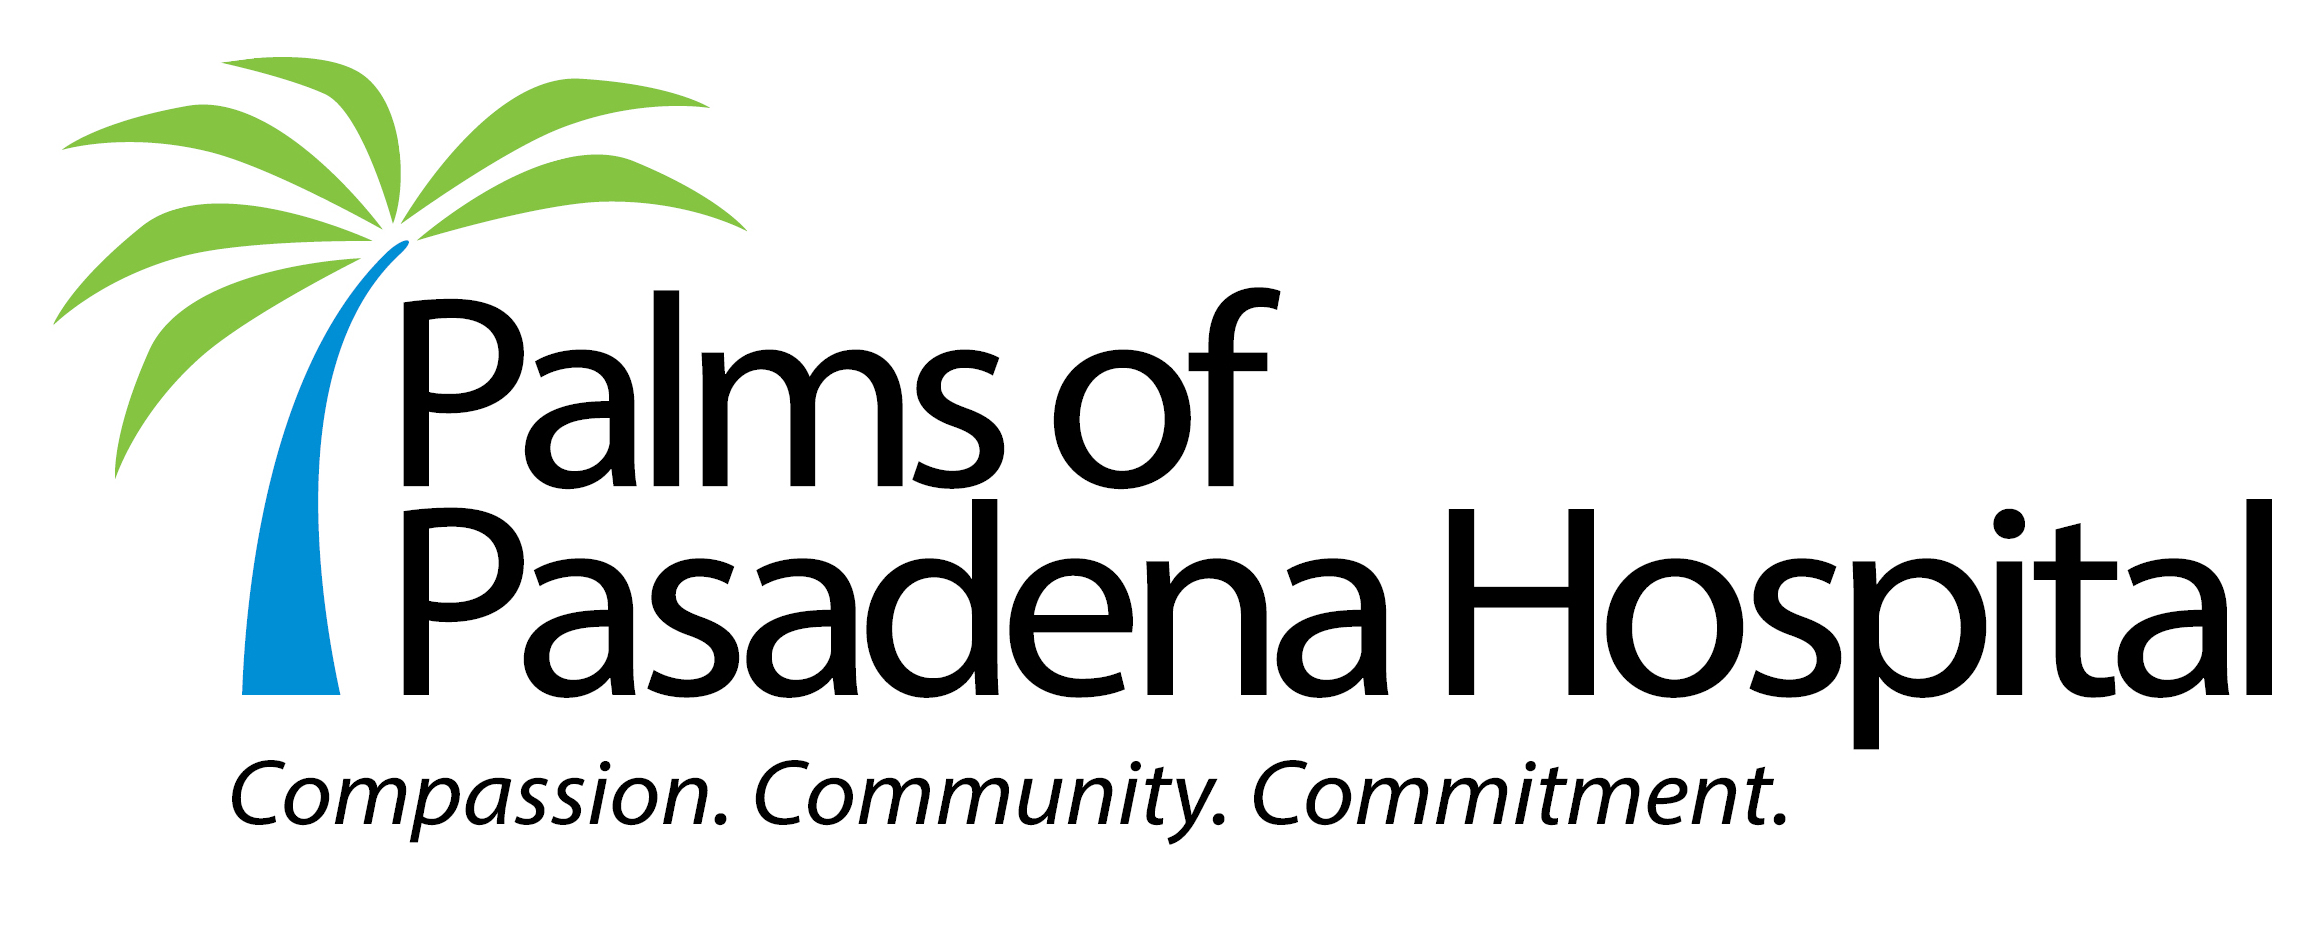 Palms of Pasadena logo